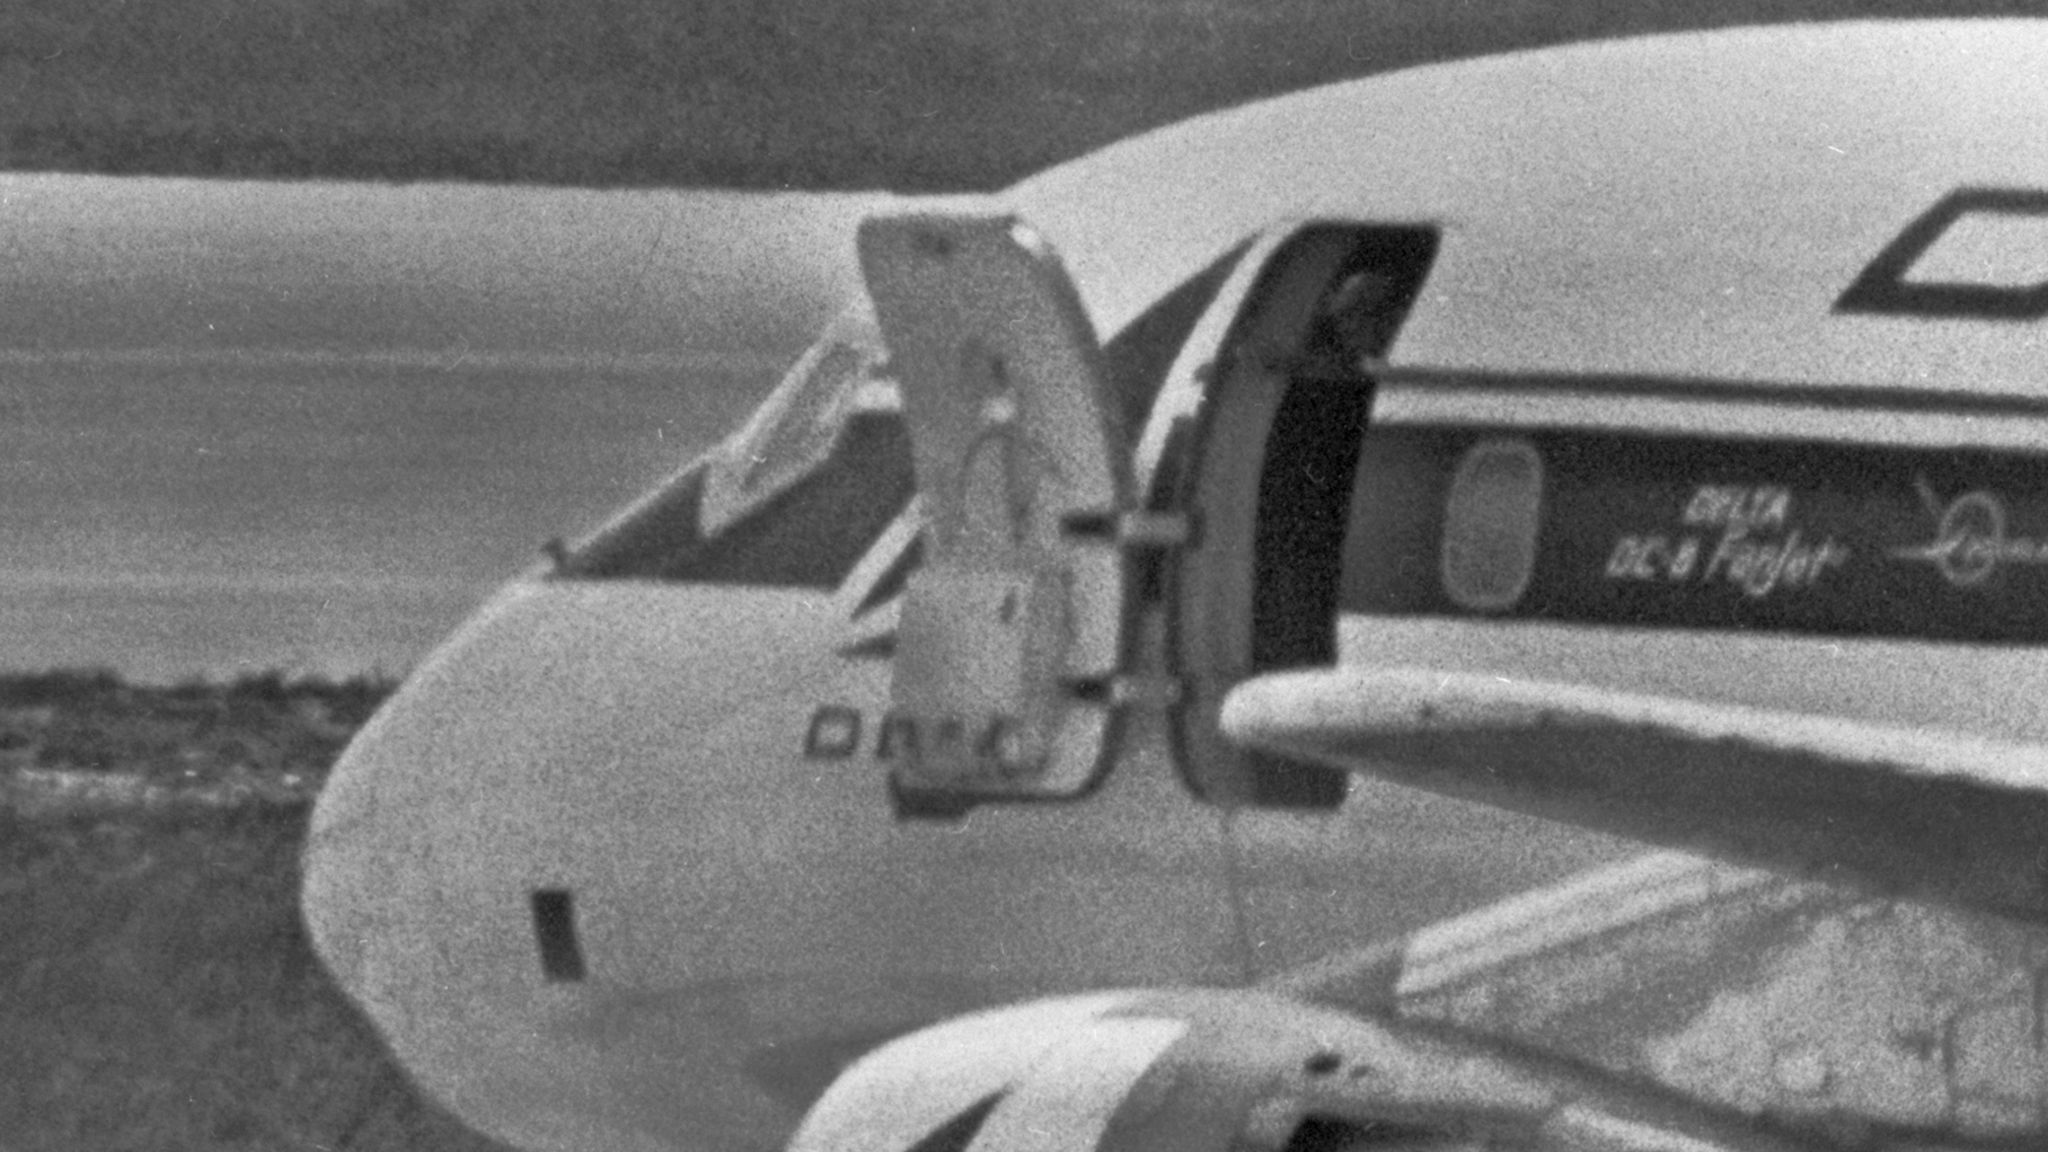 Melvin McNair at the door of the Delta airlines DC8 on 31 July 1972